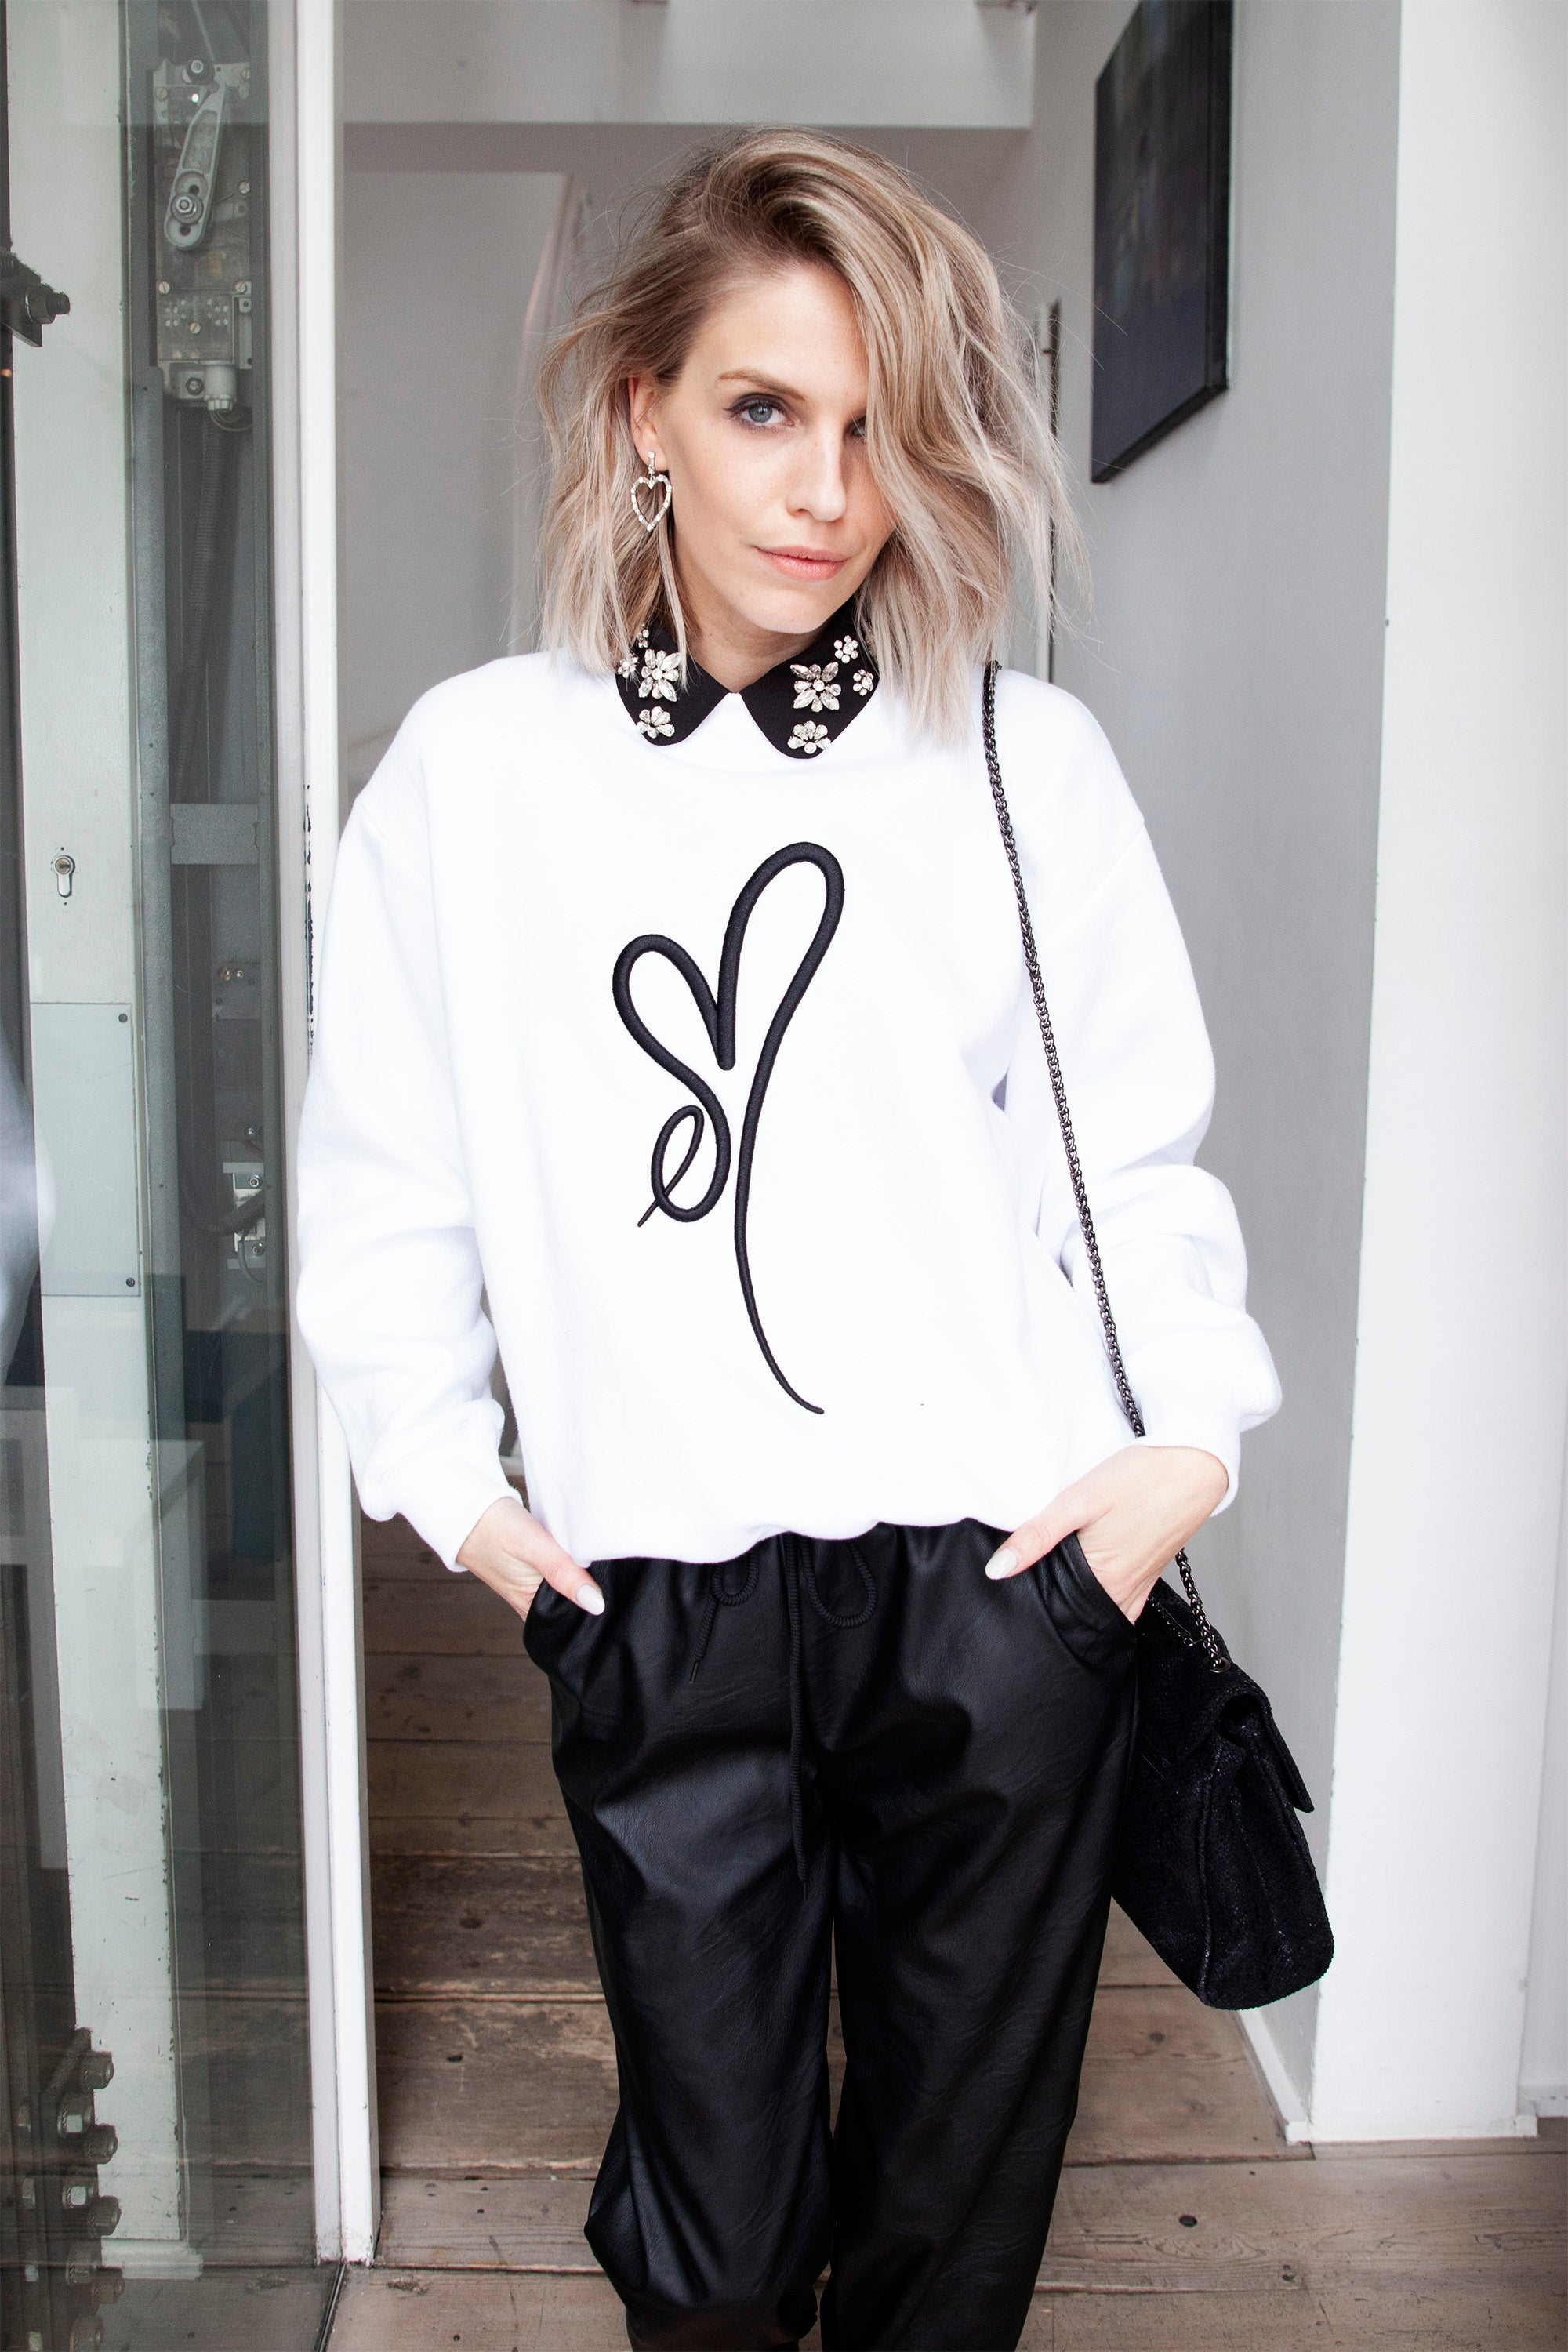 ellemilla ღ ARIA in White/Black 3D - Sweater